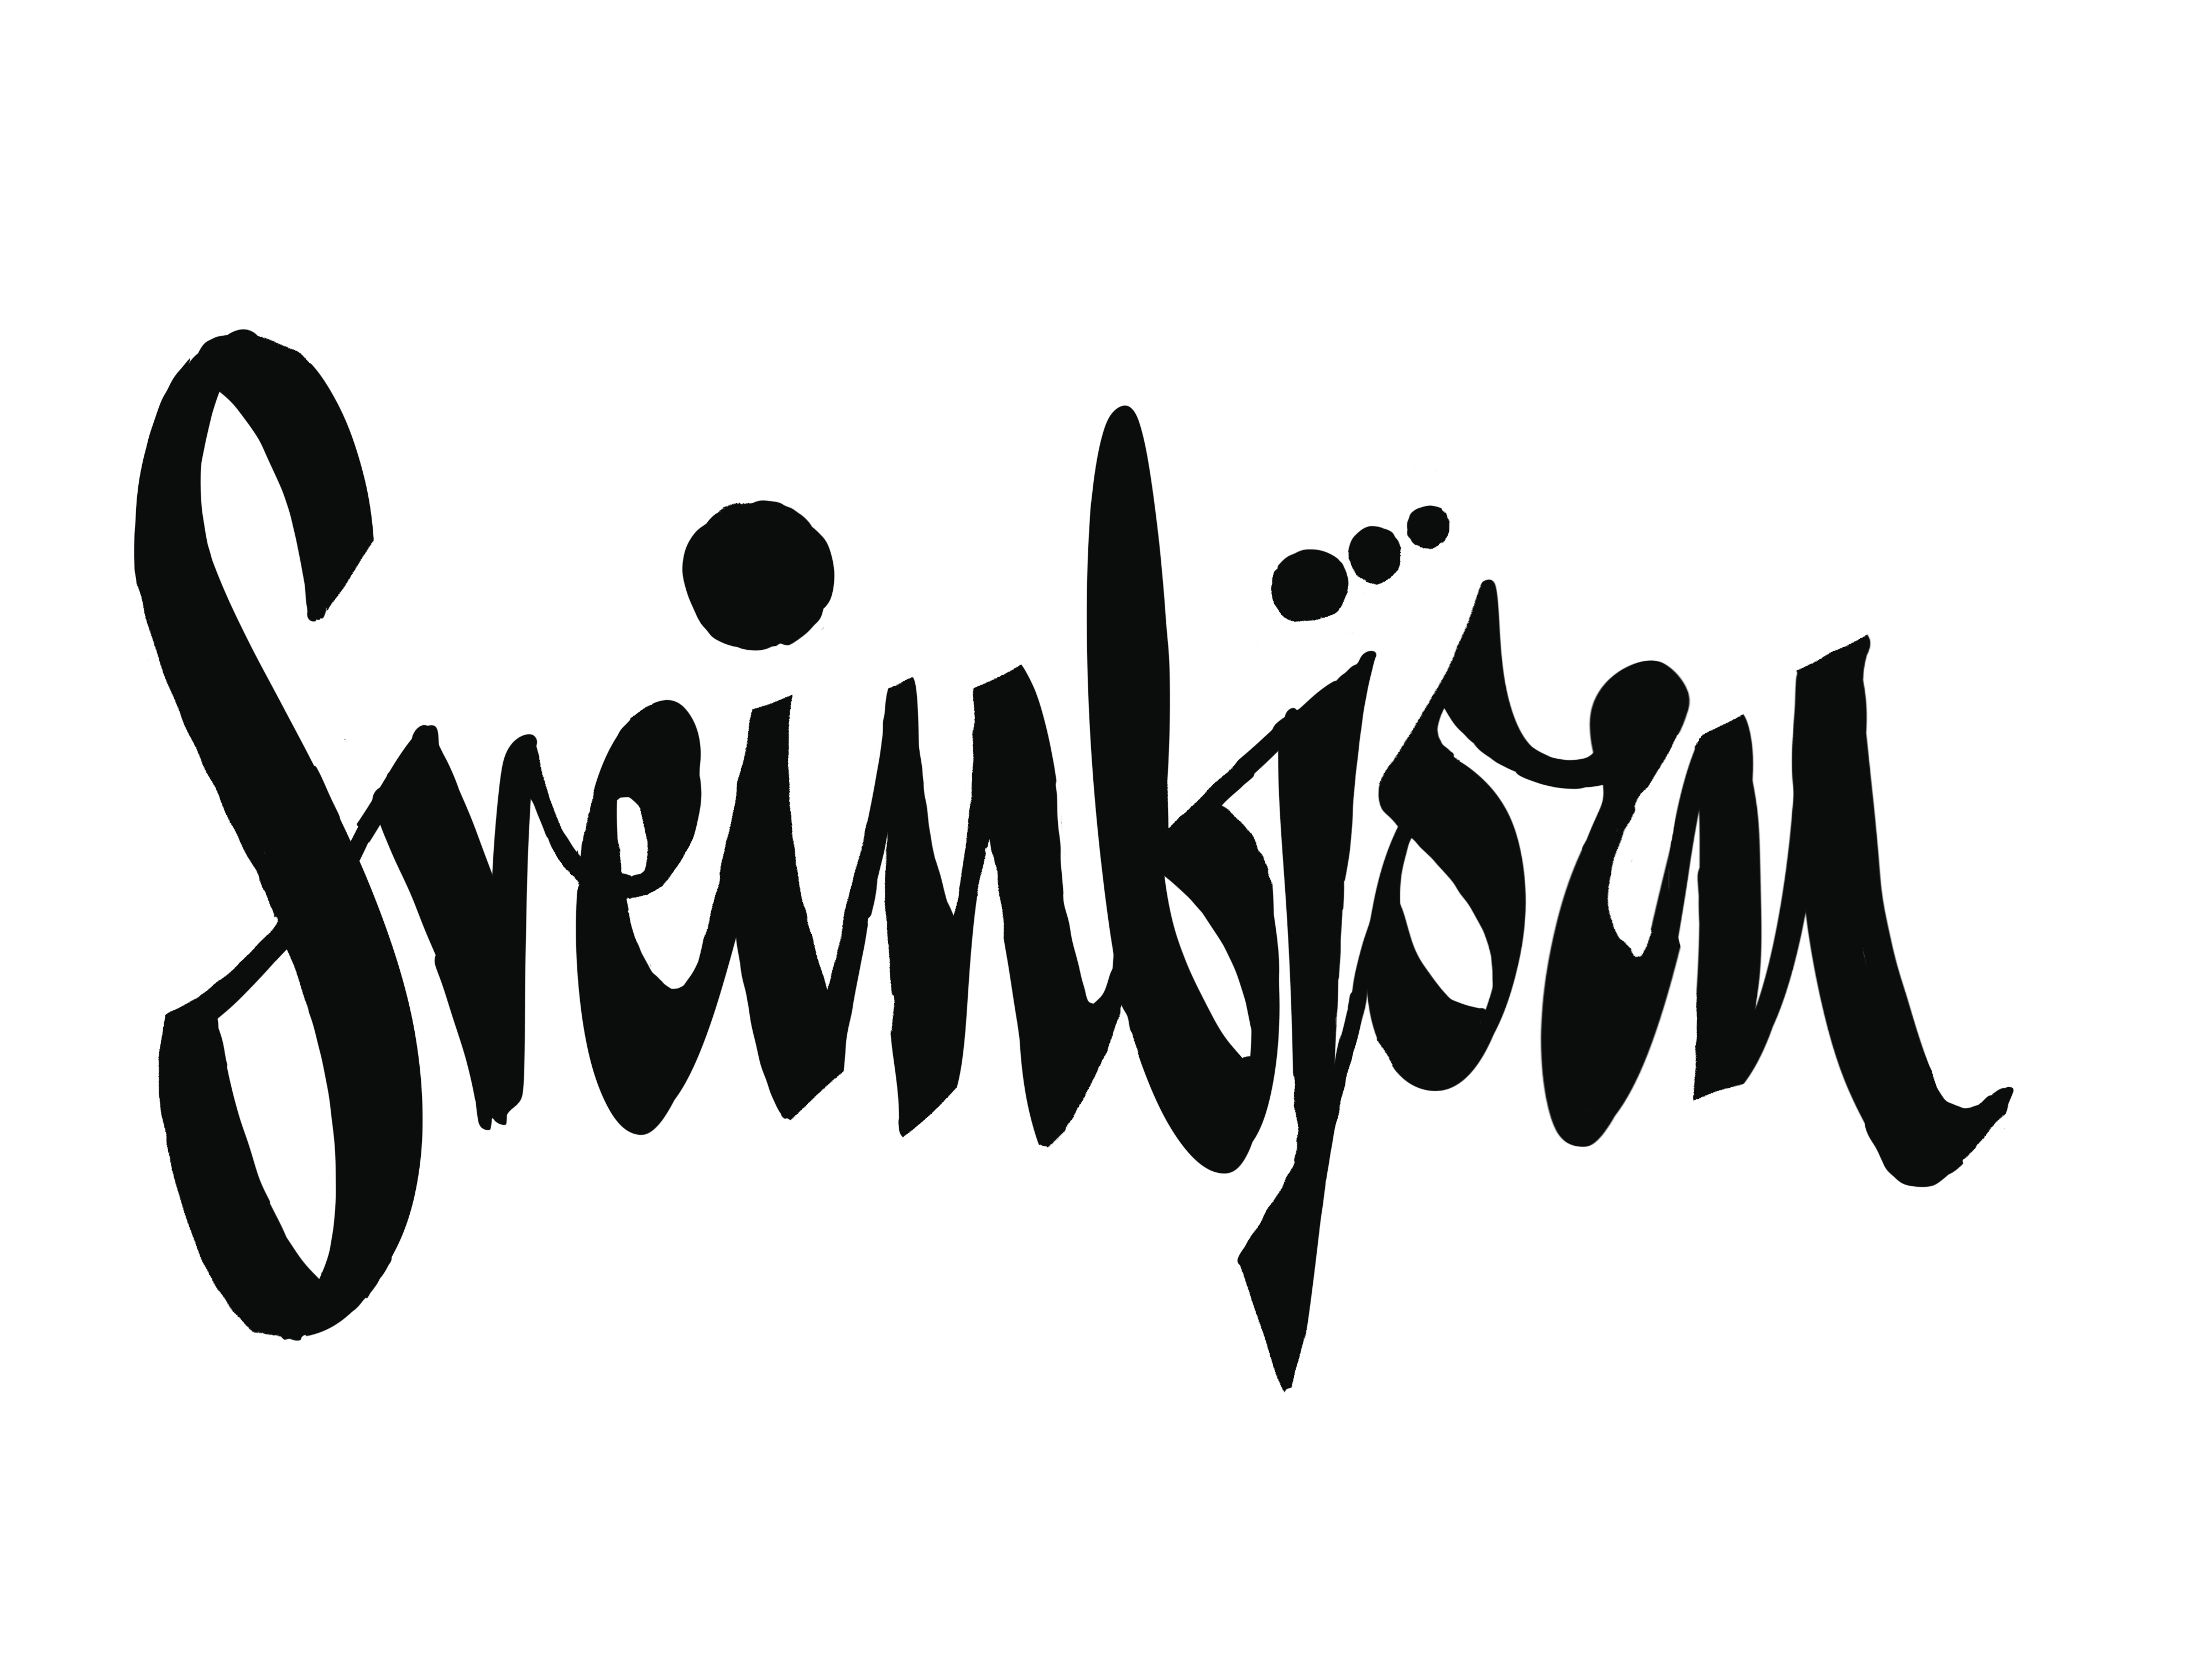 Site logo, Sveinbjörn, my name, drawn in a 50's lettering style. I'm quite happy with it.